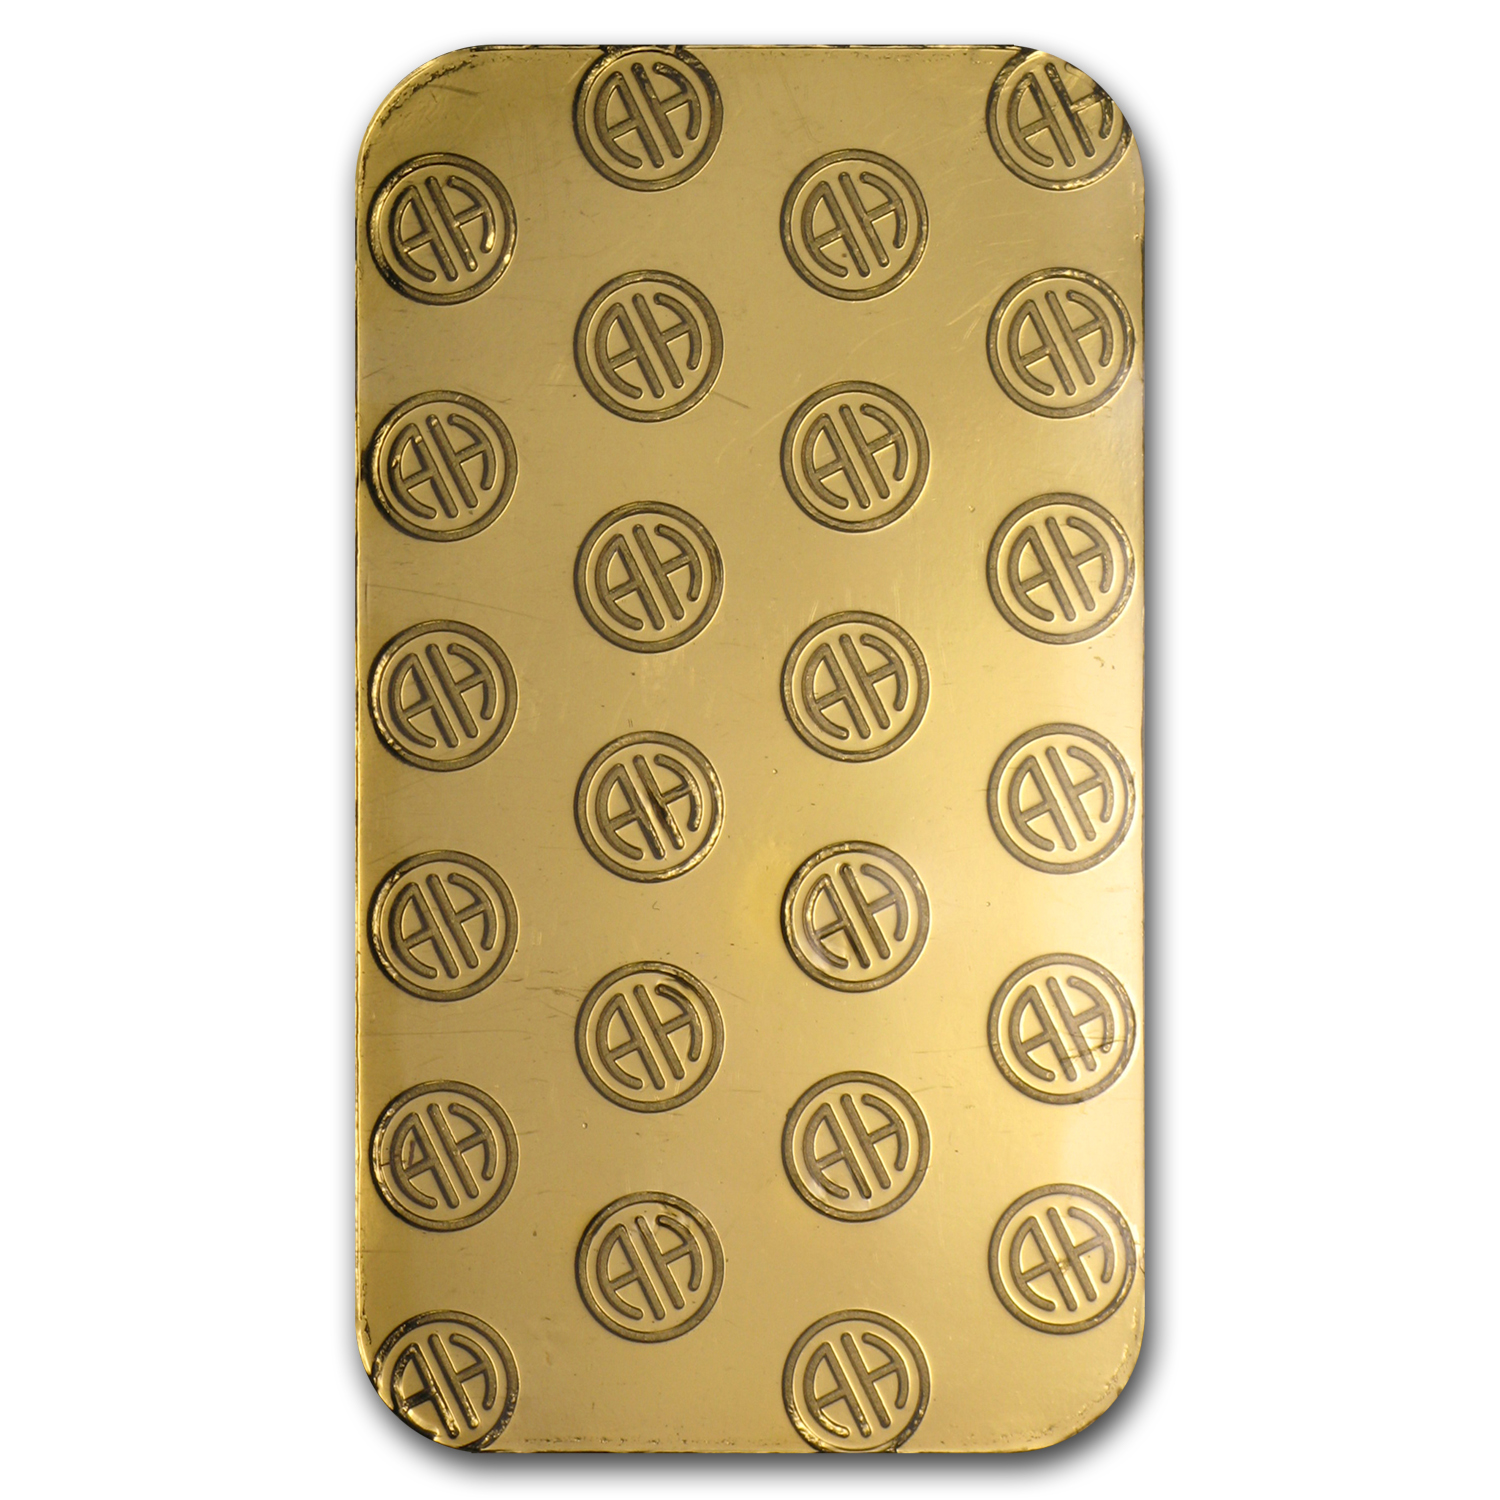 1 oz Gold Bar - Heraeus